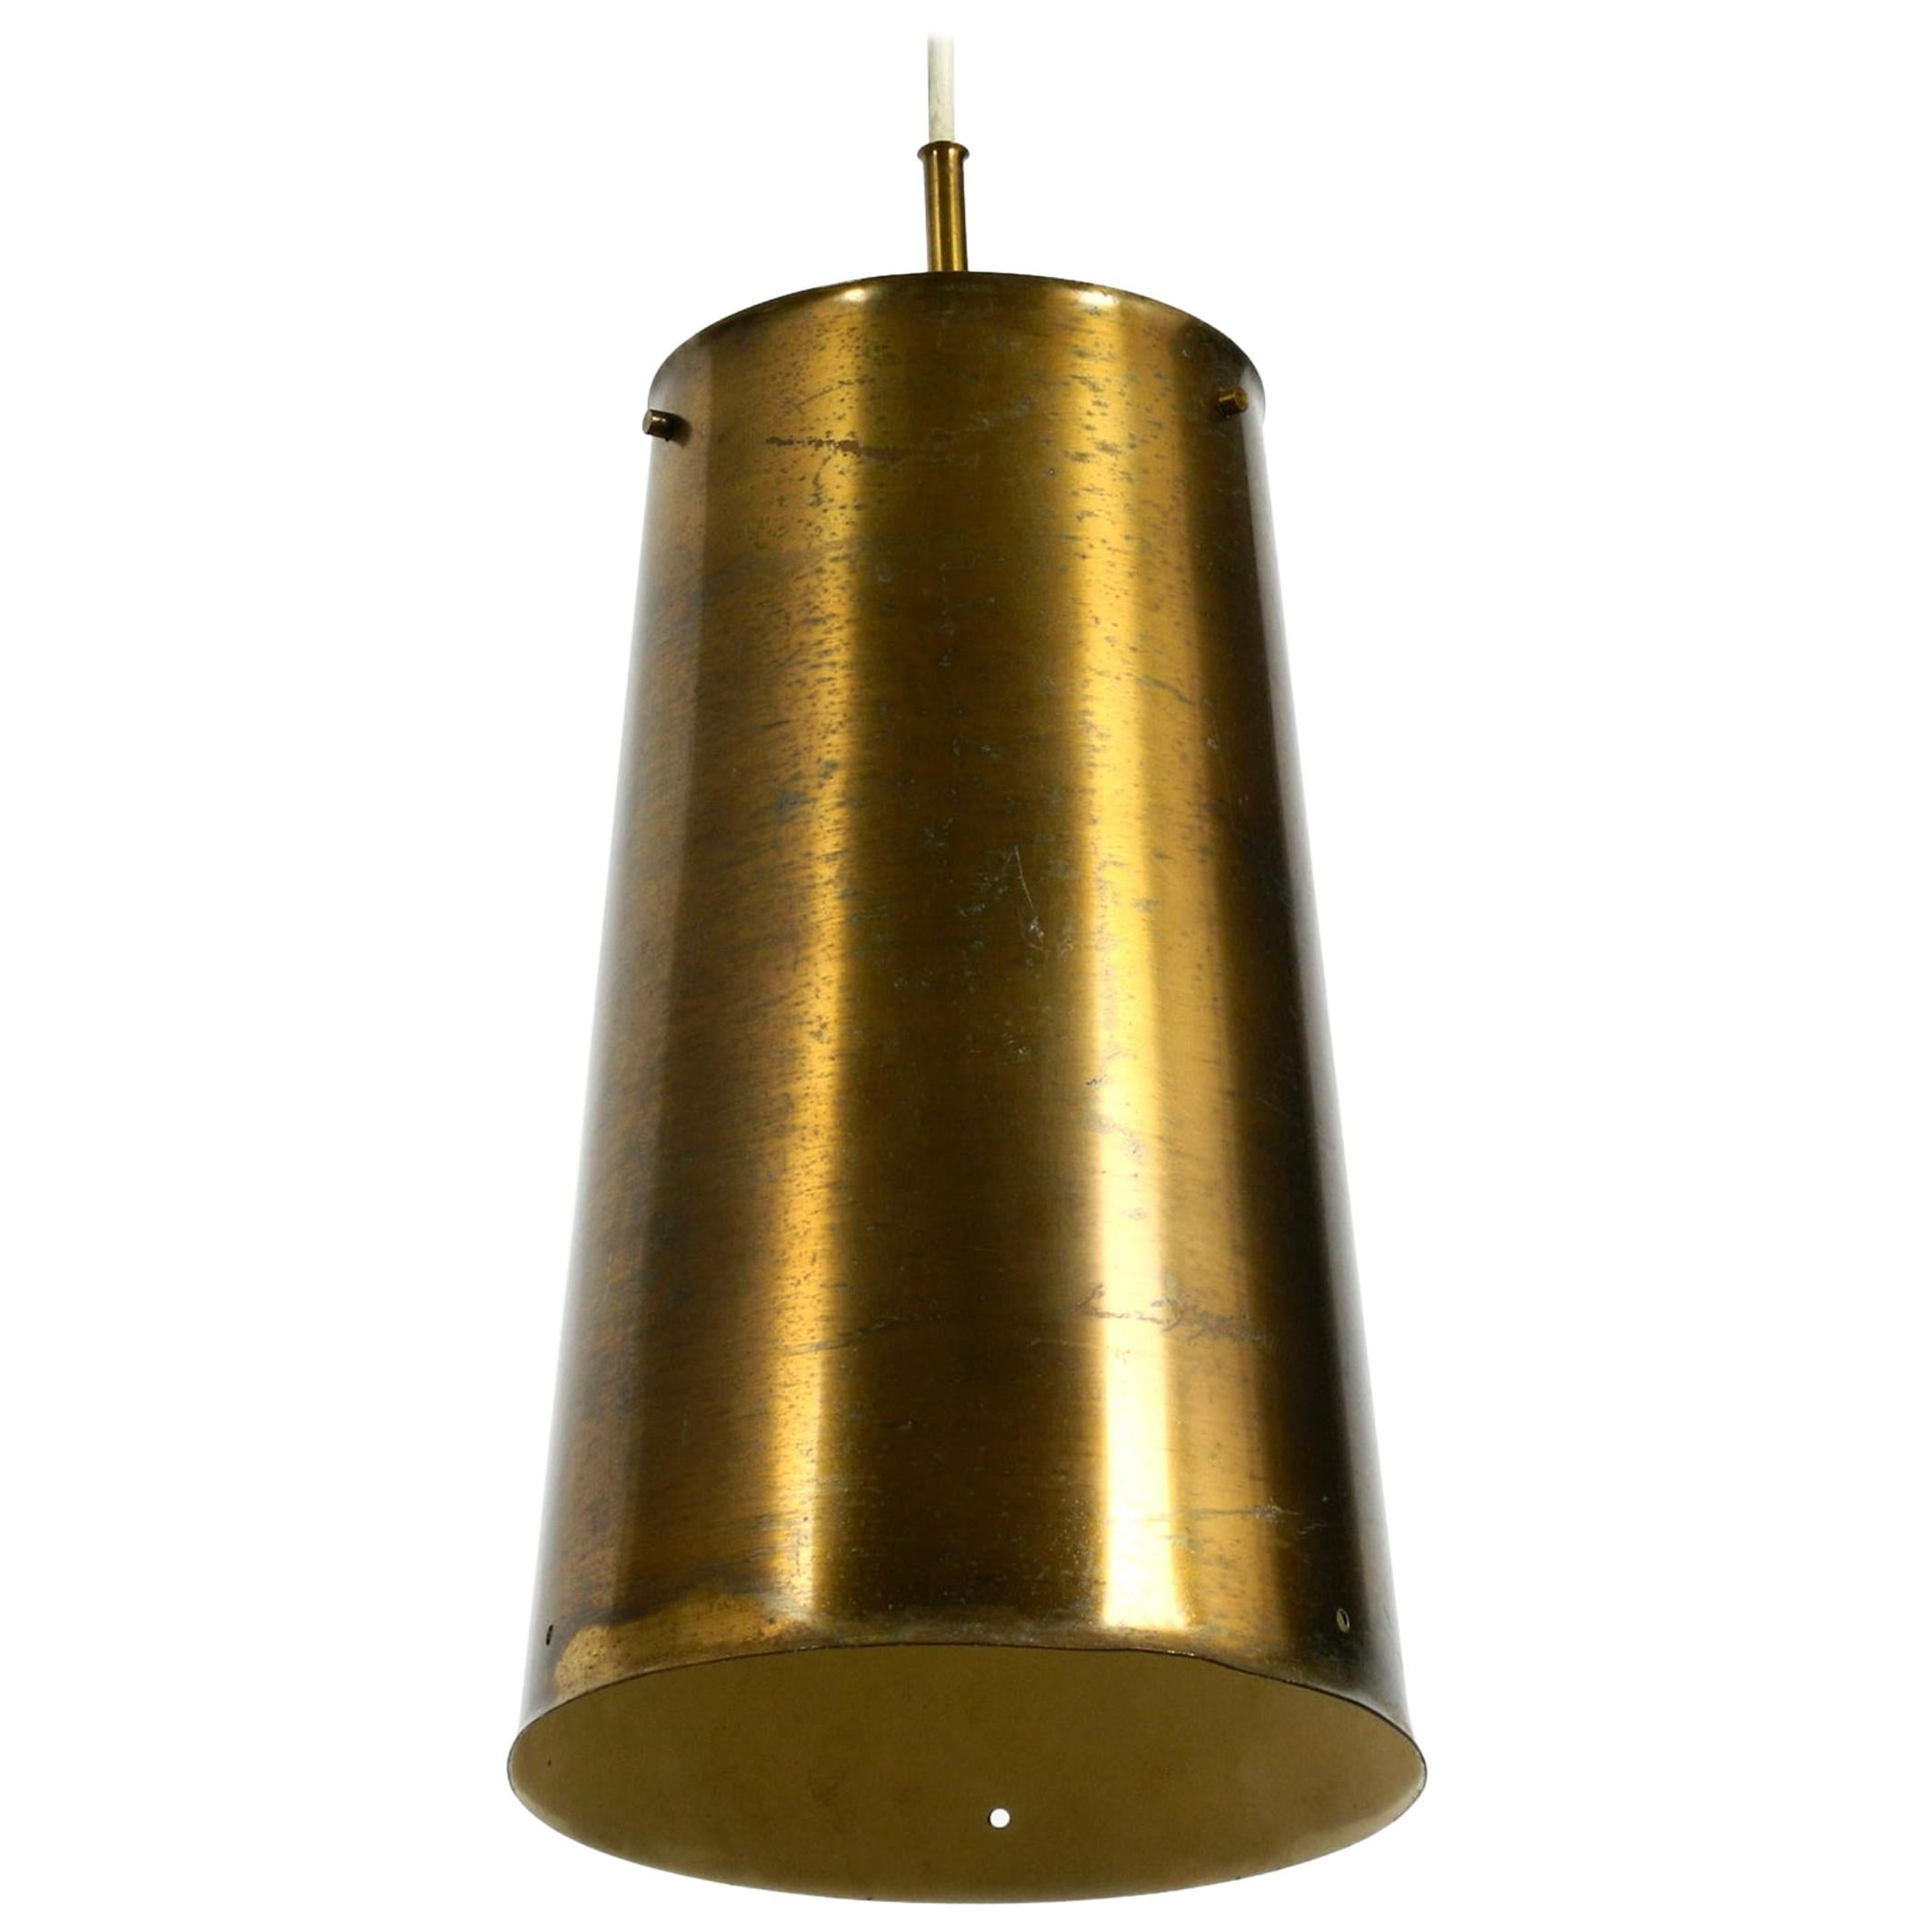 Extraordinary Large Mid-Century Modern Copper Pendant Lamp with 4 Socket